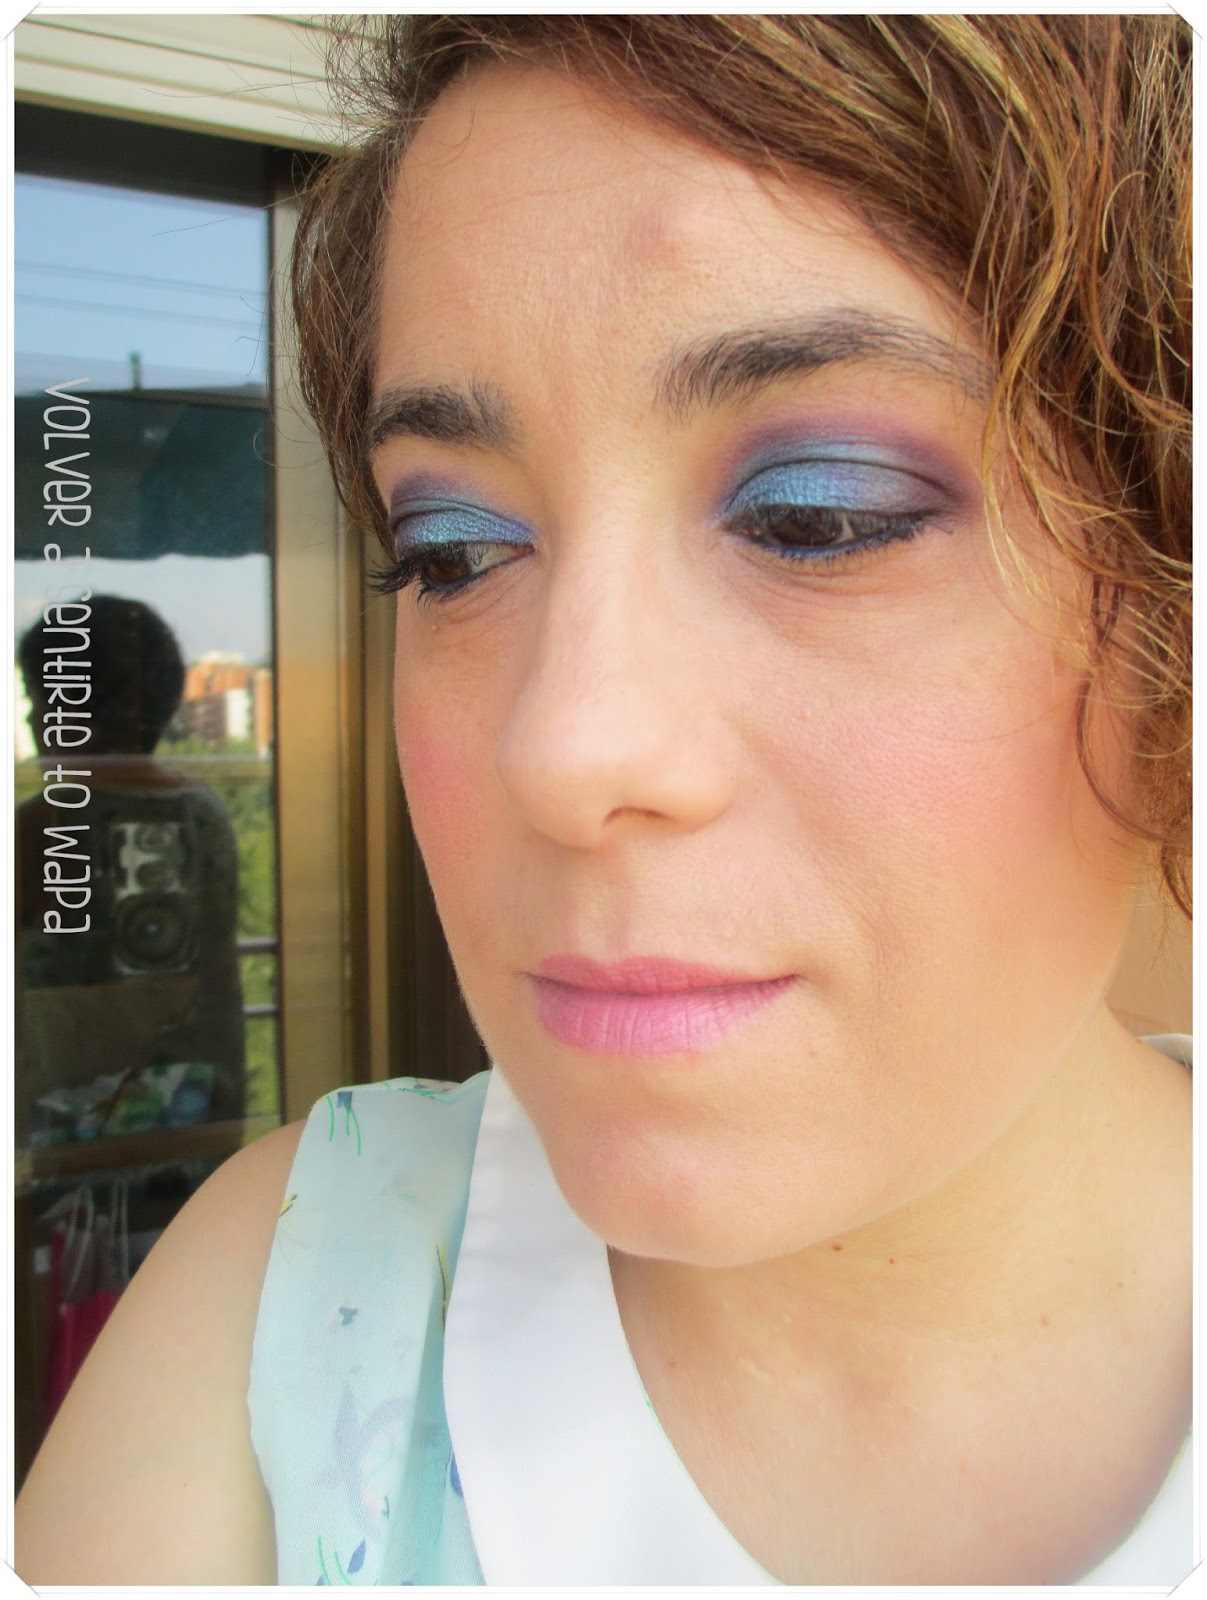 Maquillaje con productos low cost - Volver a Sentirte to Wapa